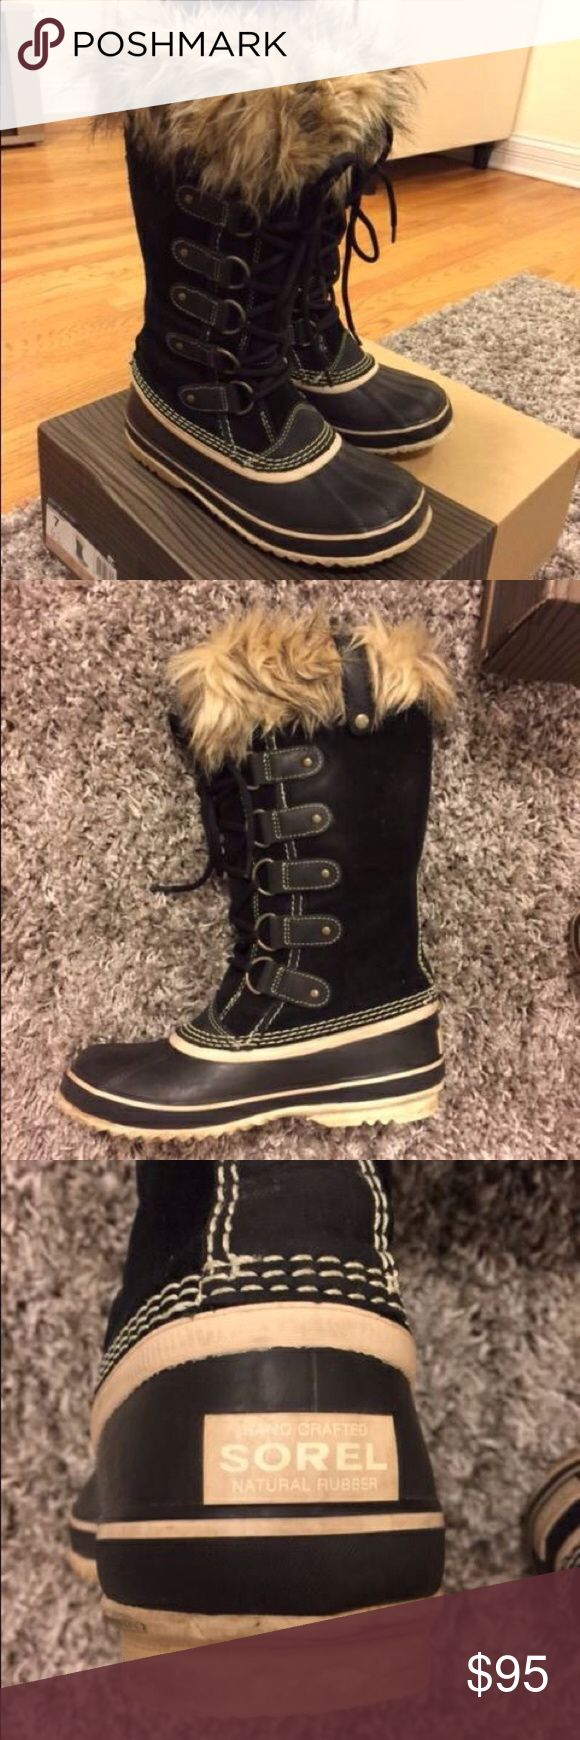 Sorel Joan of Arc Boots - Size 7 Selling a pair of used Sorel Joan of Arctic boots. Please note that one of the buttons broke off (see pictures). These keep your feet dry AND warm. Comes with box. Sorel Shoes Winter & Rain Boots